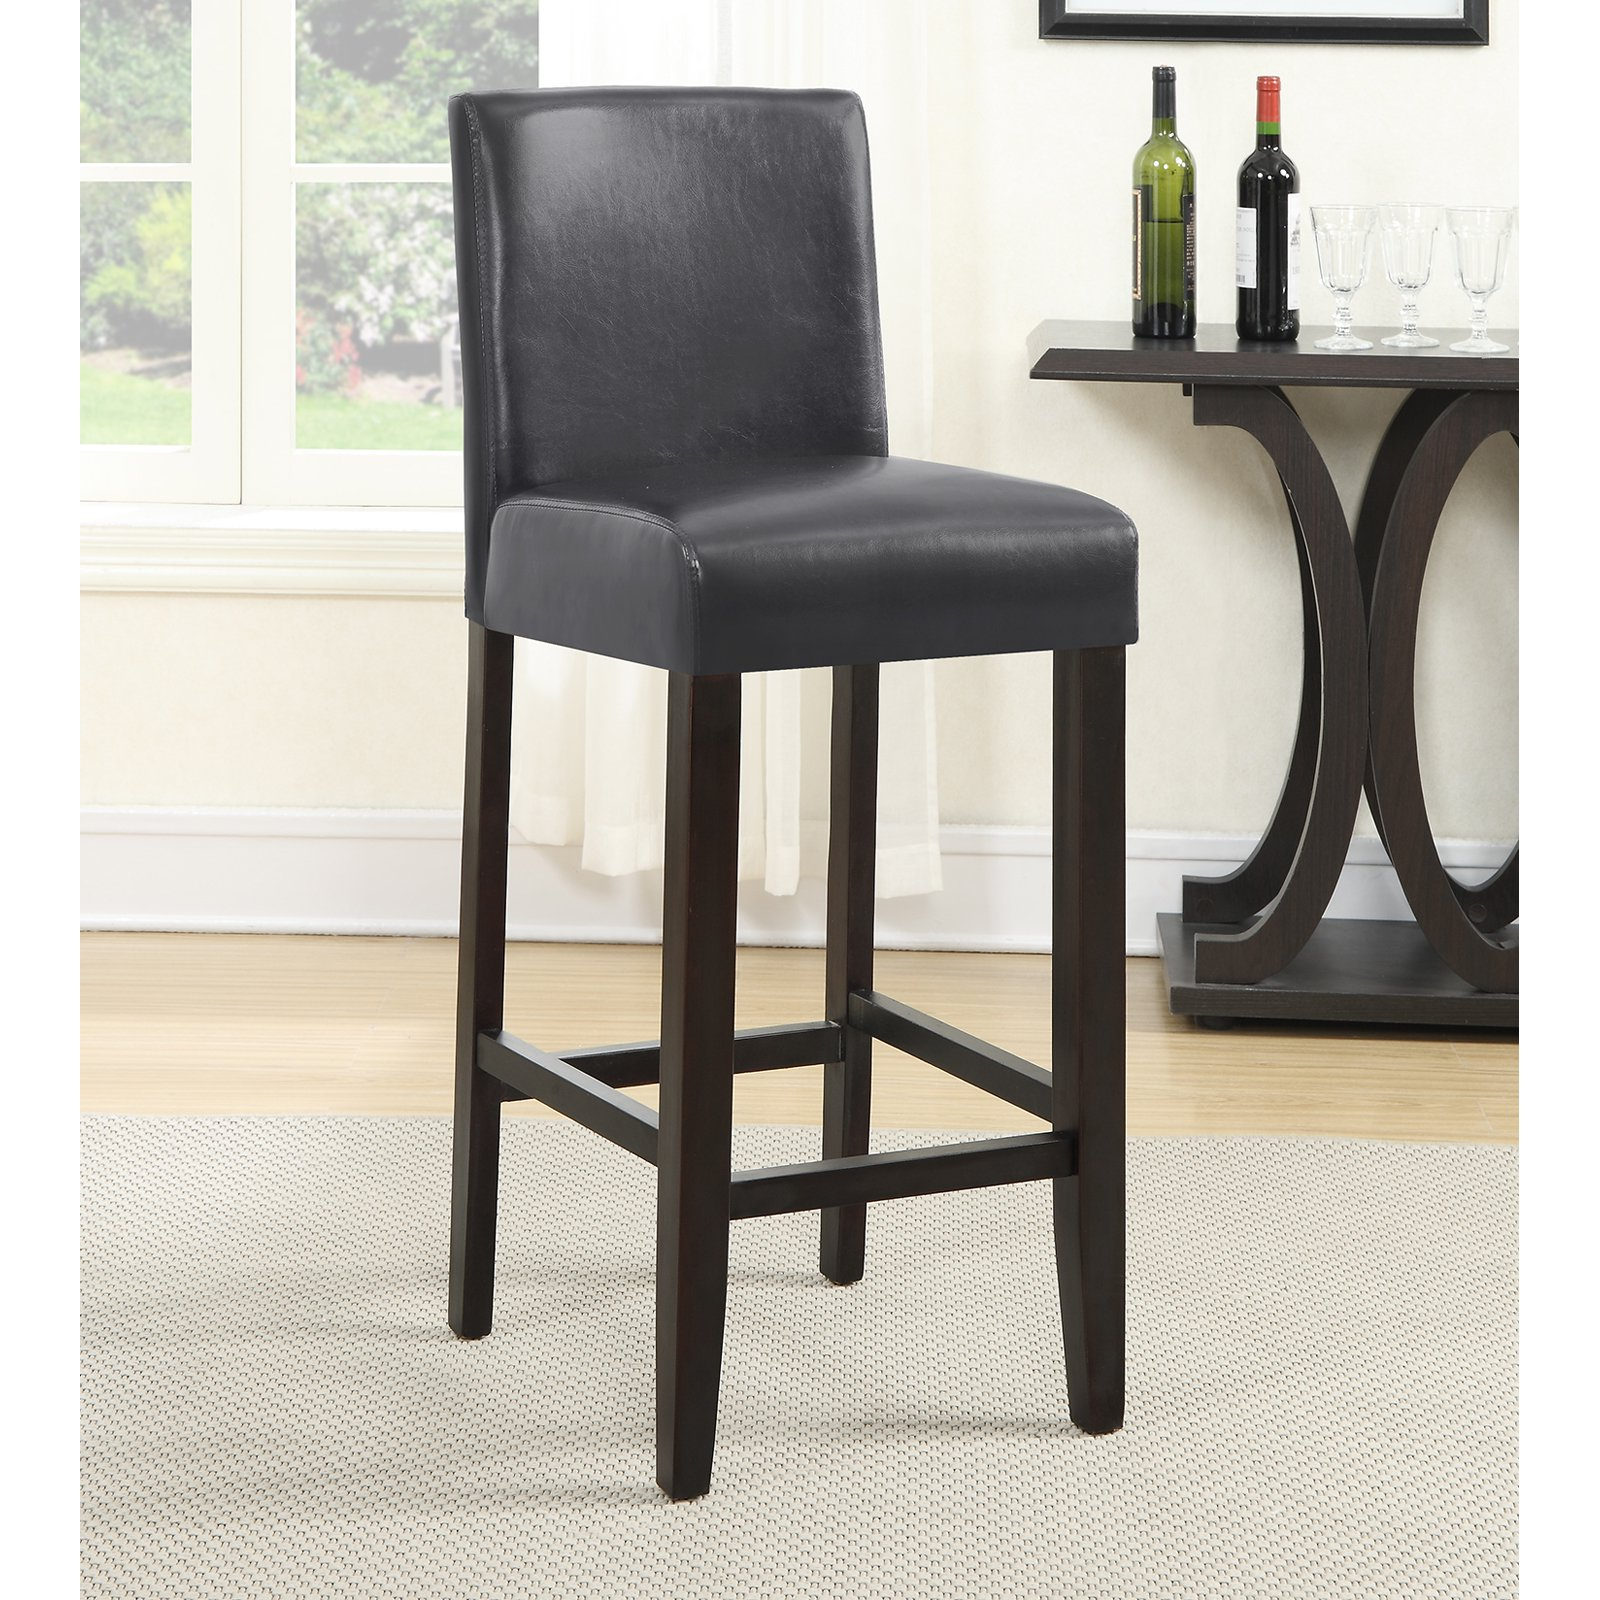 Roundhill Citylight Bar Height Barstool Set of 2, Multiple Colors Available